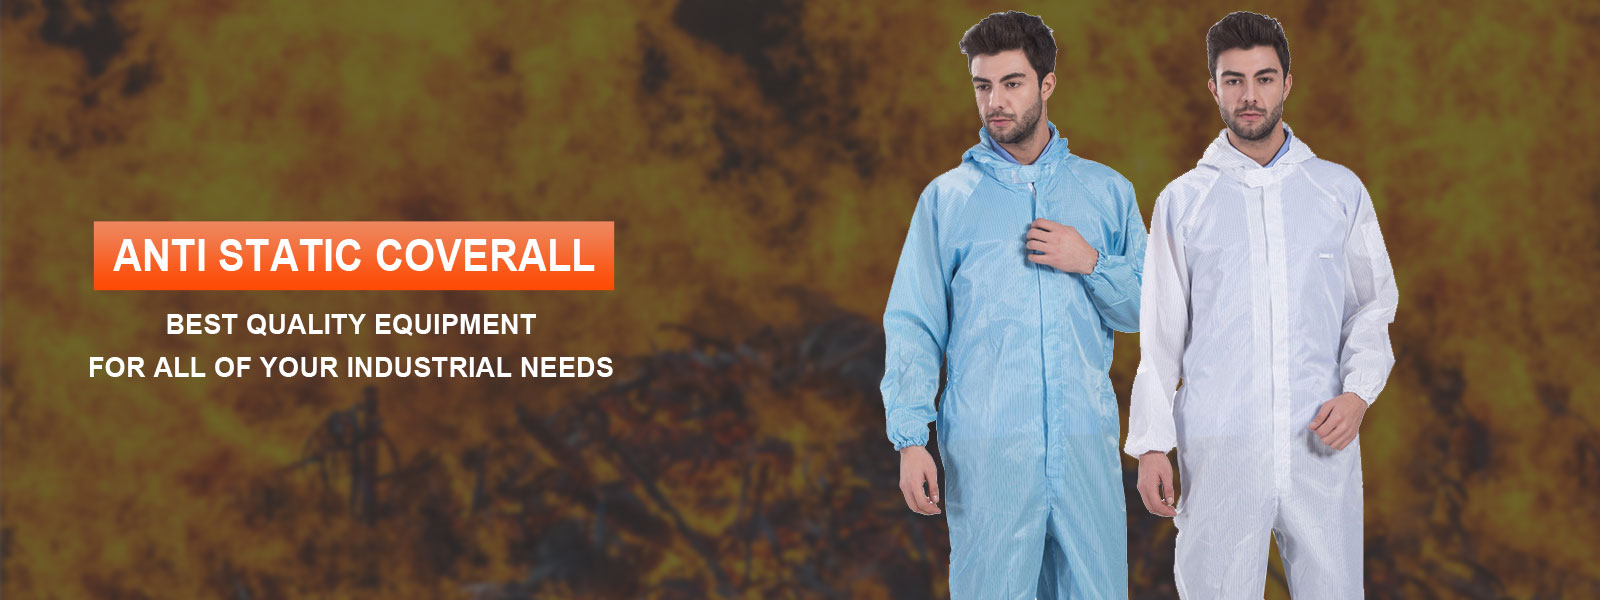 Anti Static Coverall Manufacturers in New zealand